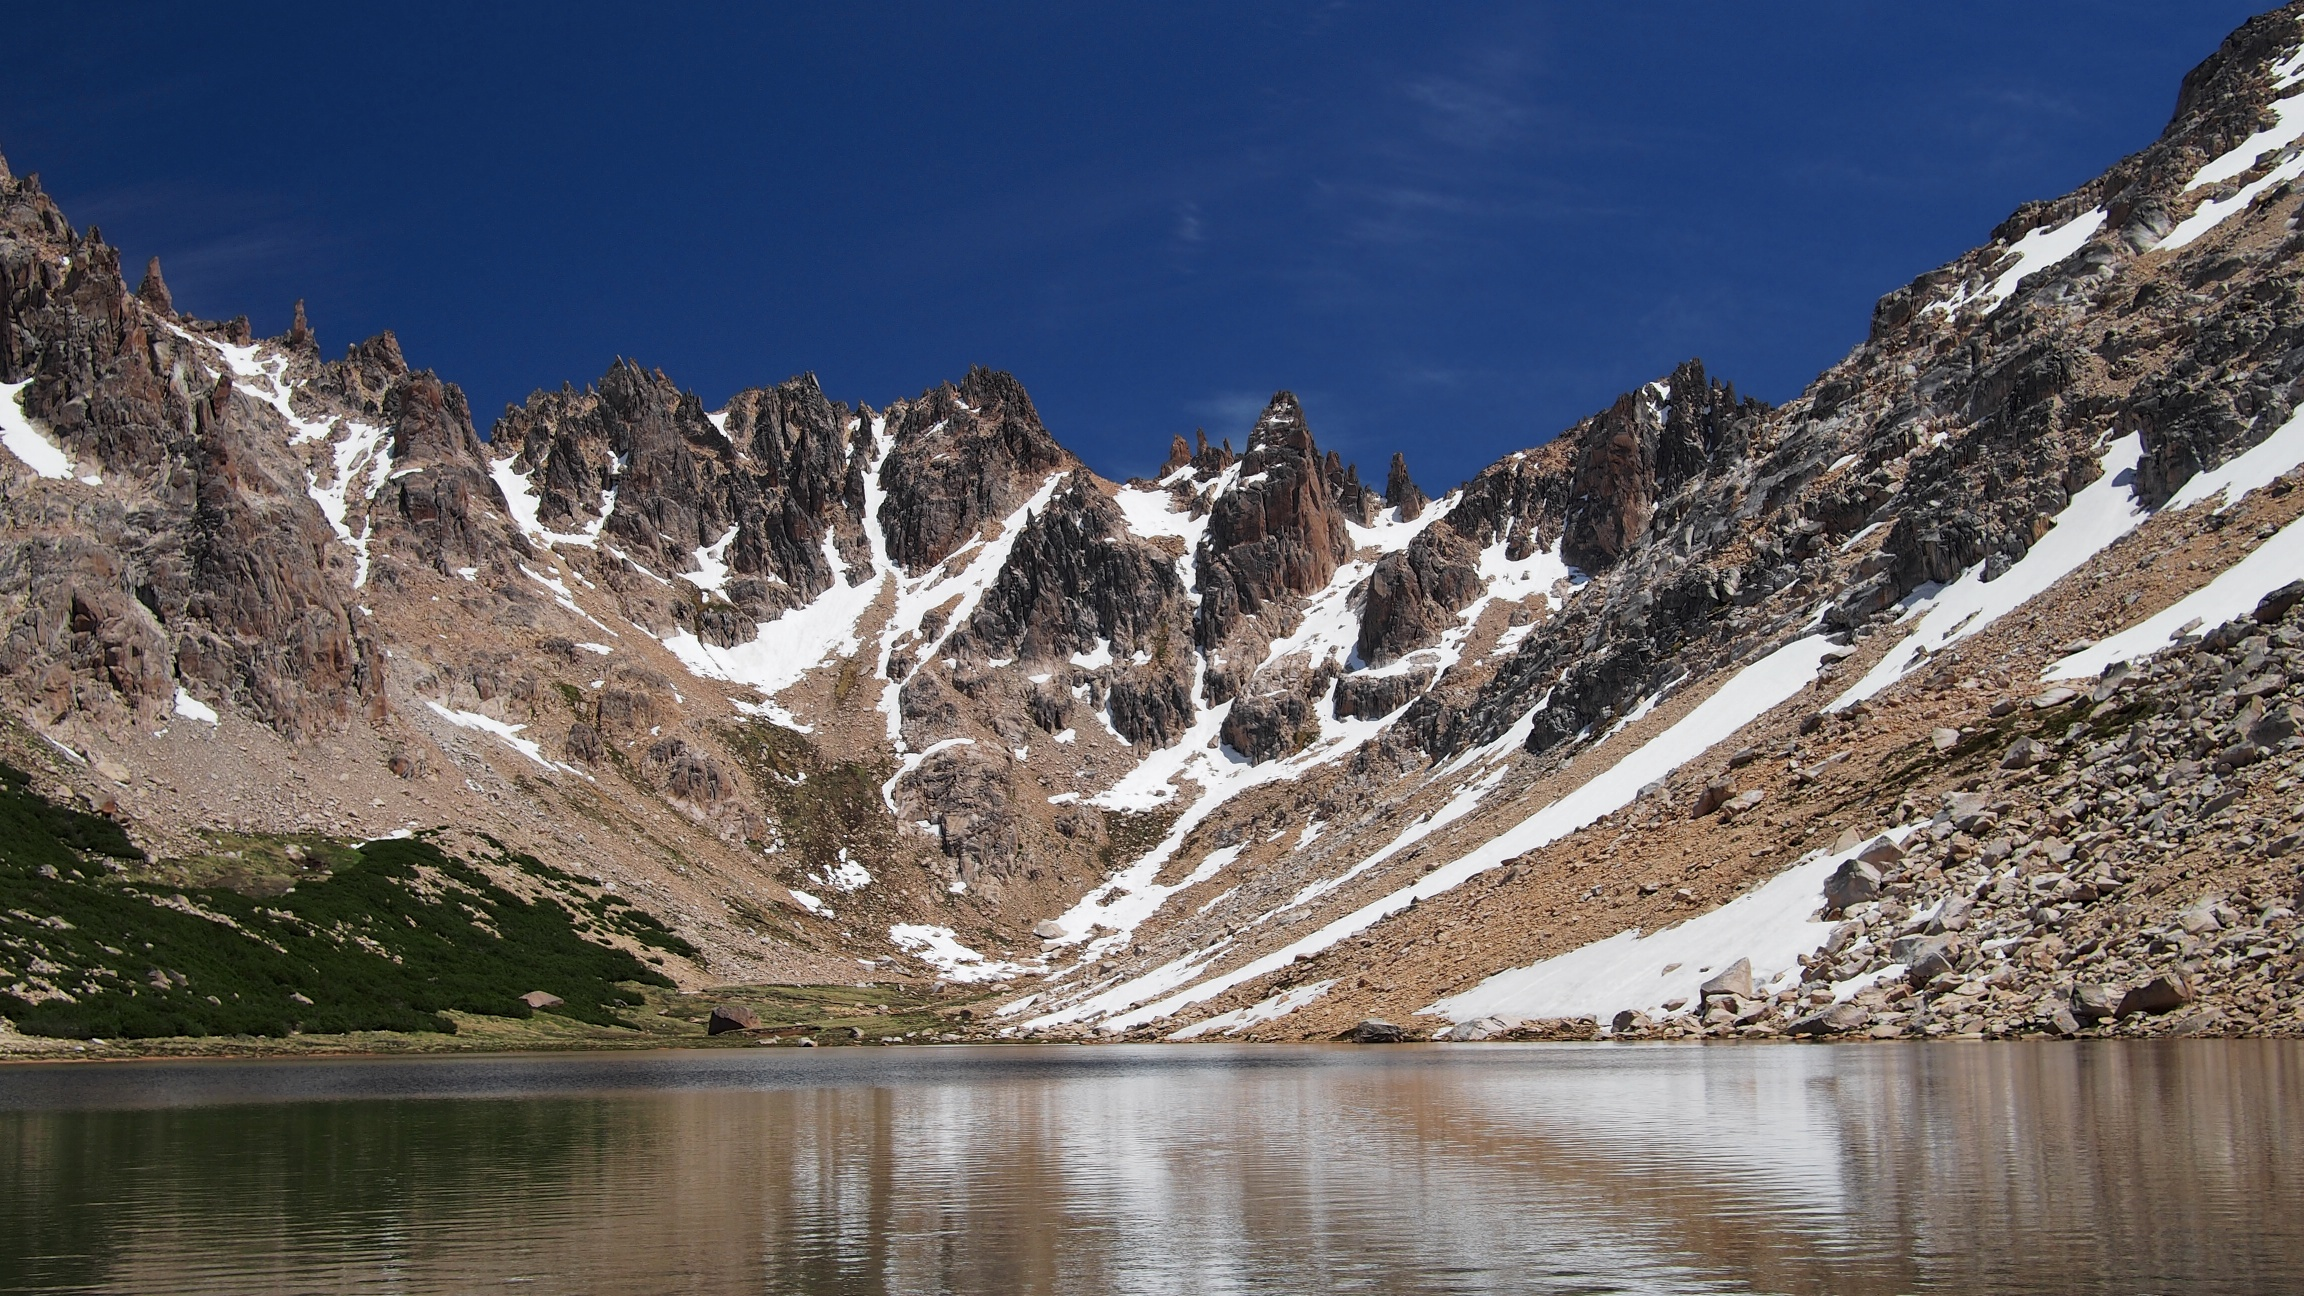 The majestic view once you arrive to Refugio Frey